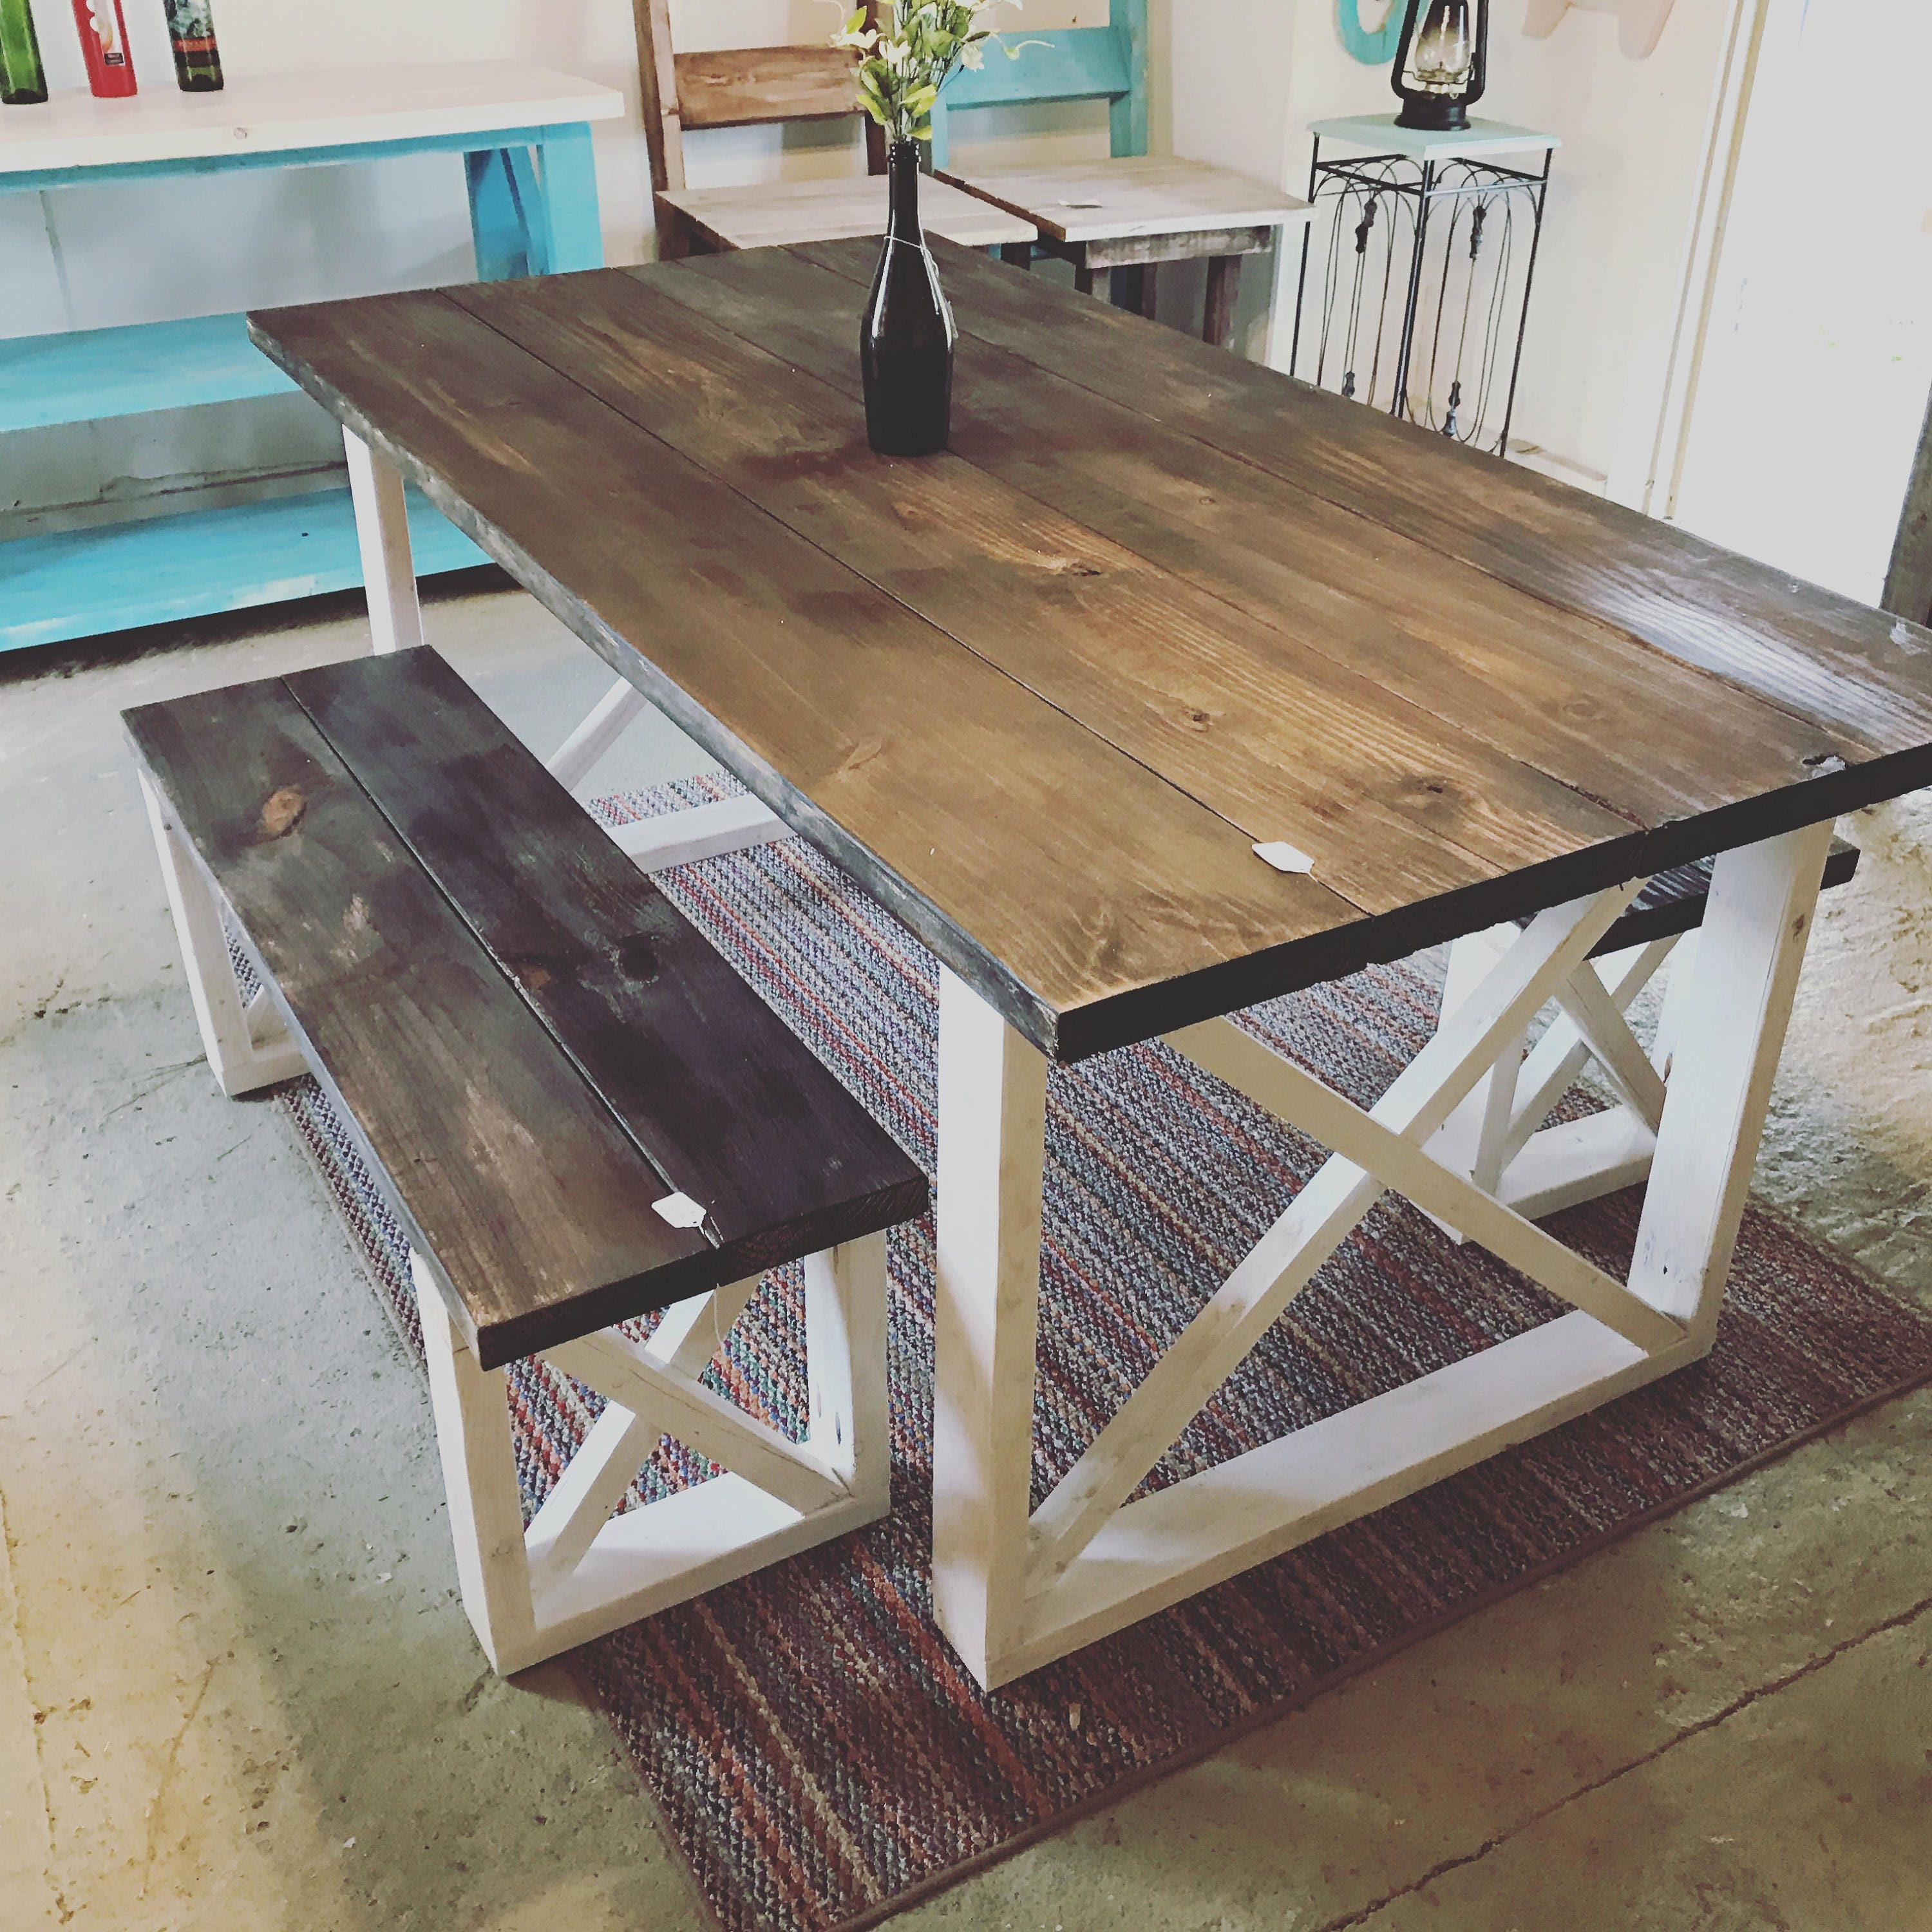 tables wood rustic legs turned life pine the made kenilworth with reclaimed chic only products from shabby table country farmhouse